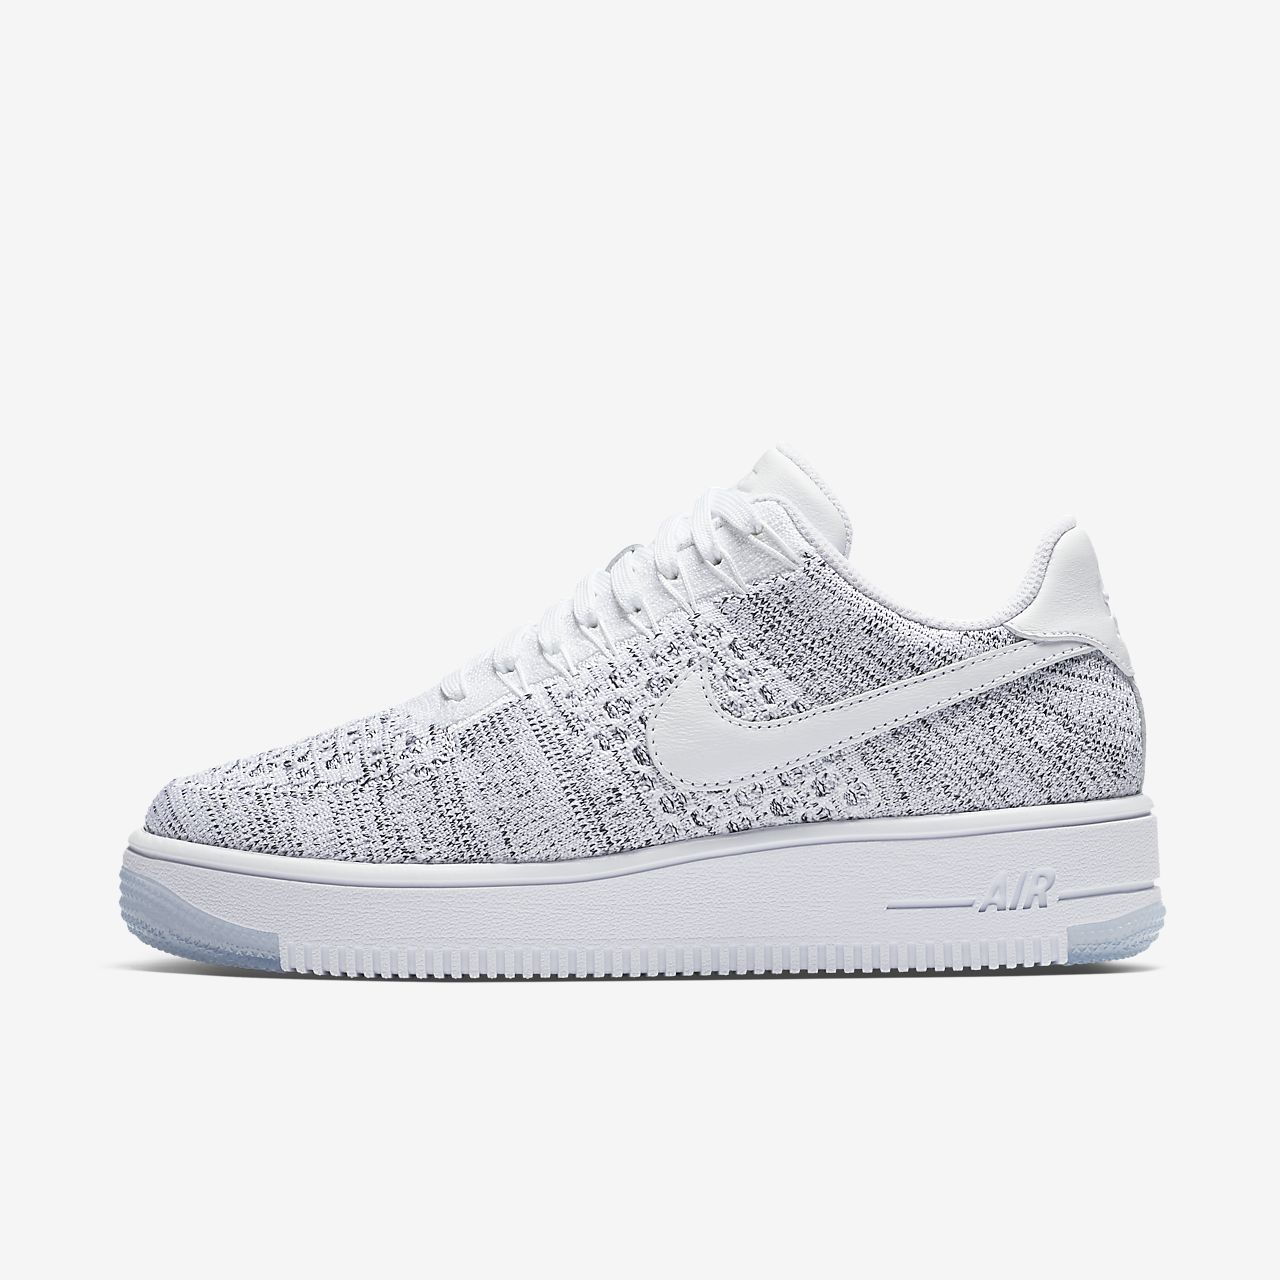 nike air force 1 low flyknit nz